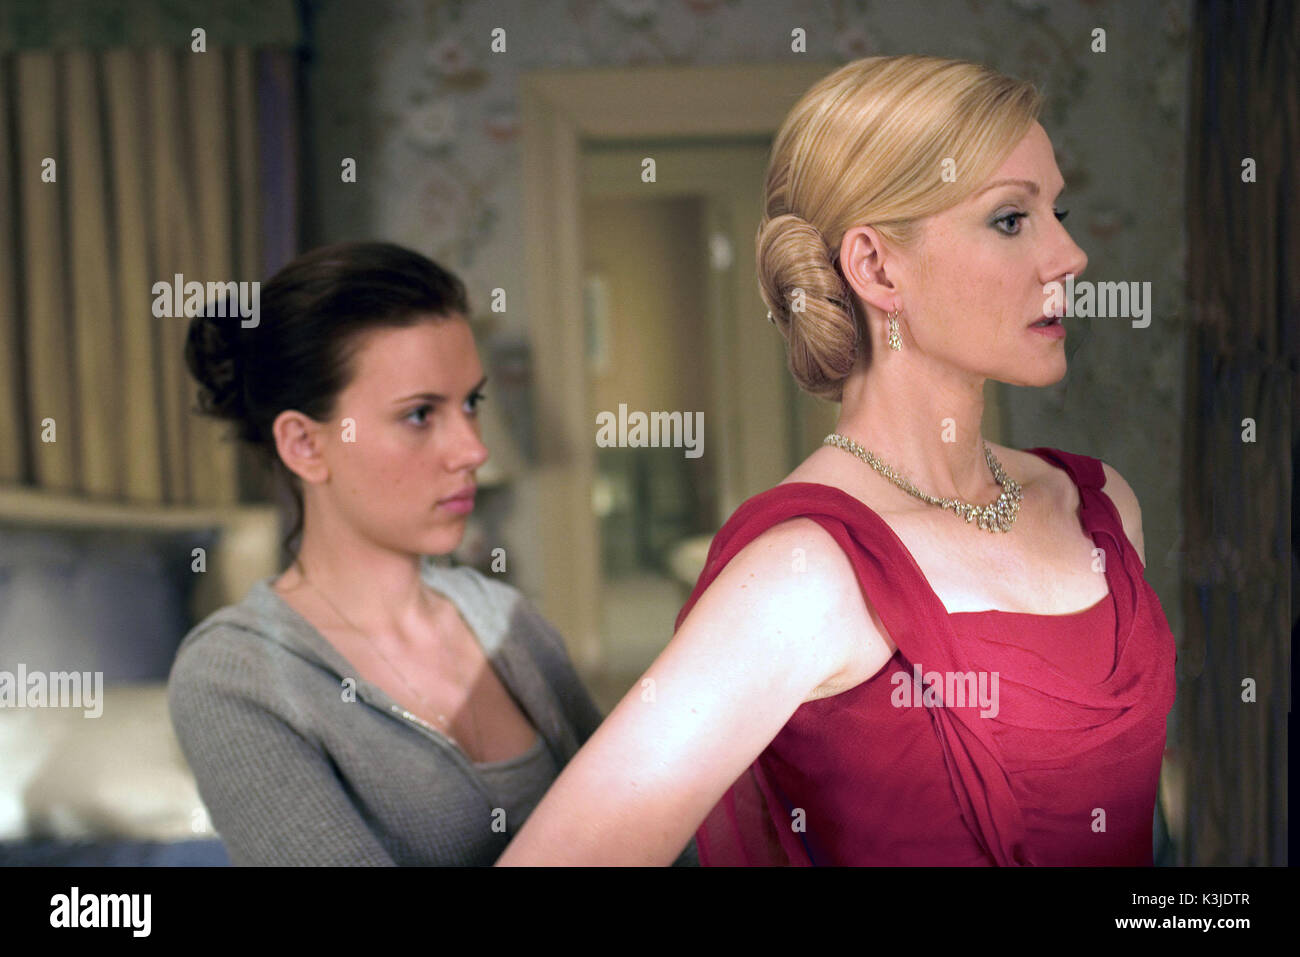 THE NANNY DIARIES SCARLETT JOHANSSON Laura Linney The Nanny Diaries Datum 2007